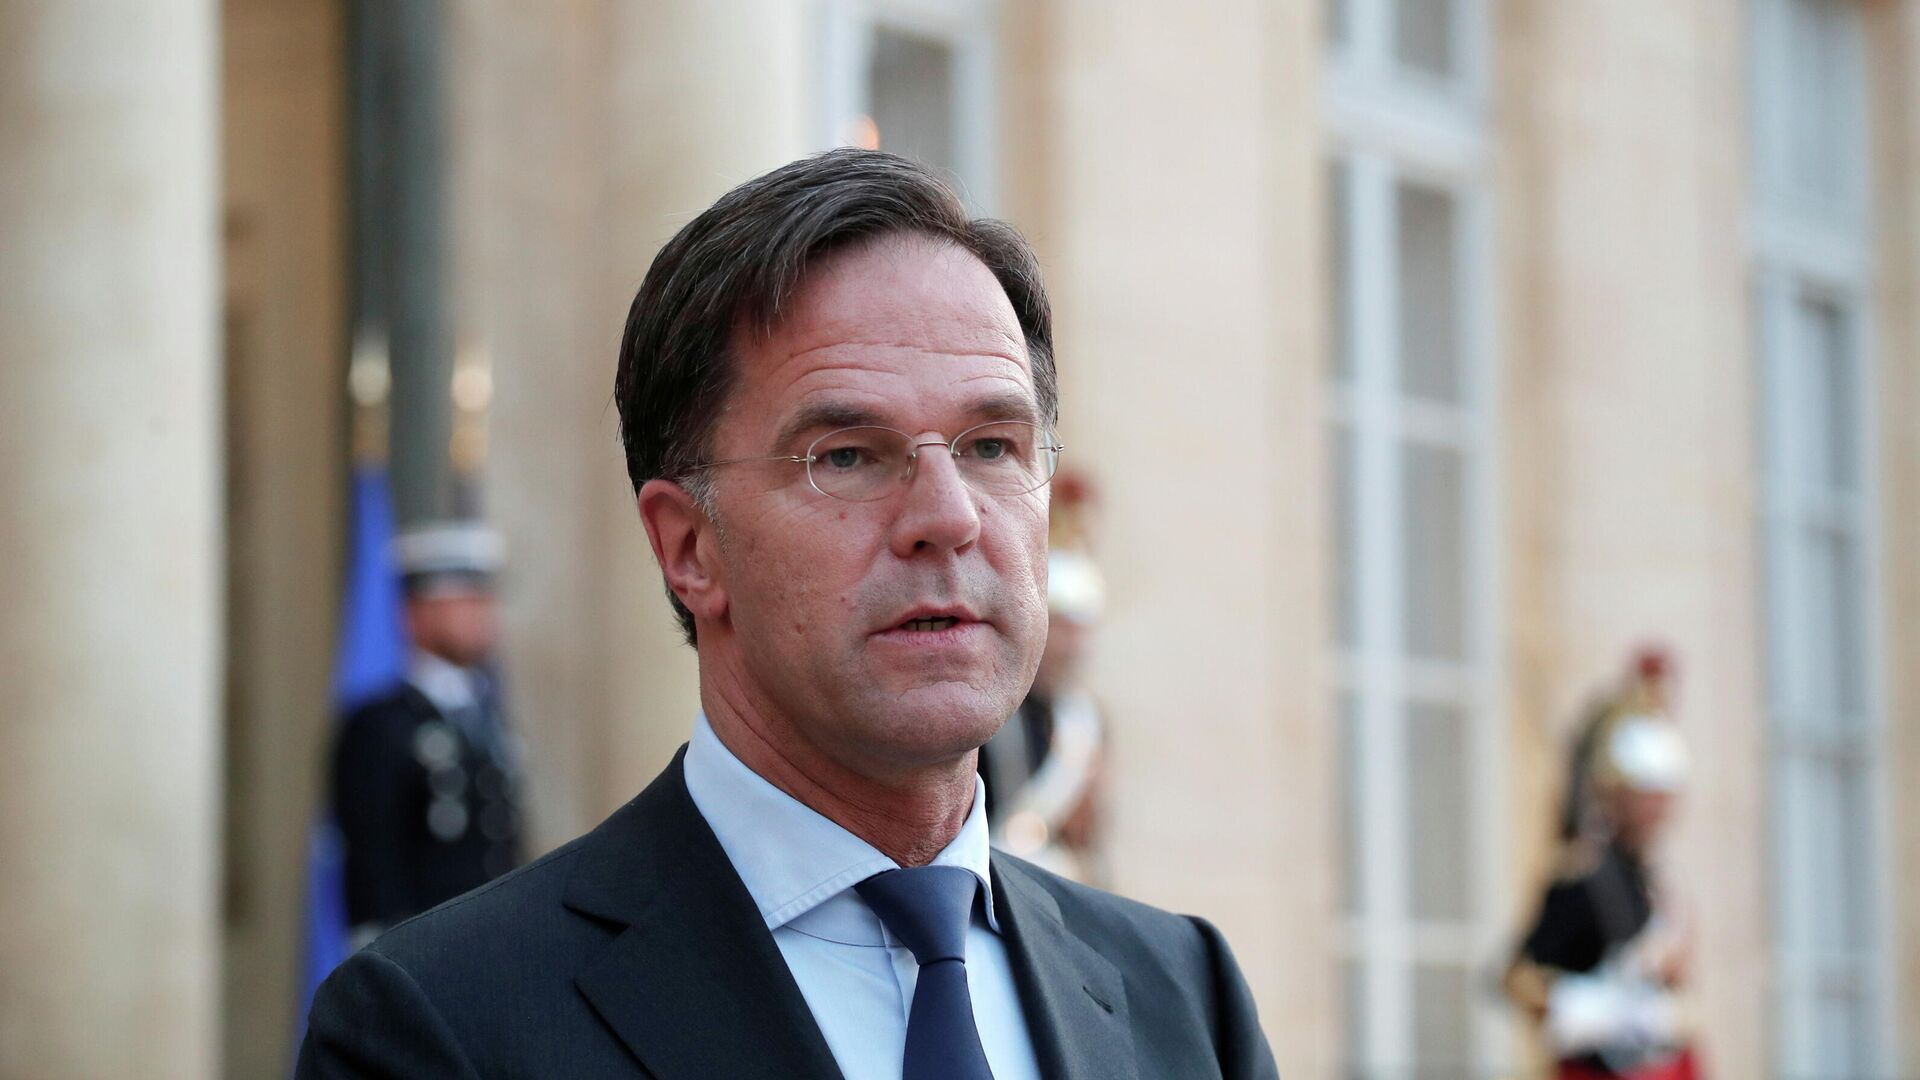 Netherlands' Prime Minister Mark Rutte delivers a joint statement with French President Emmanuel Macron (not pictured) before their meeting at the Elysee Palace in Paris, France, August 31, 2021. - Sputnik International, 1920, 28.09.2021